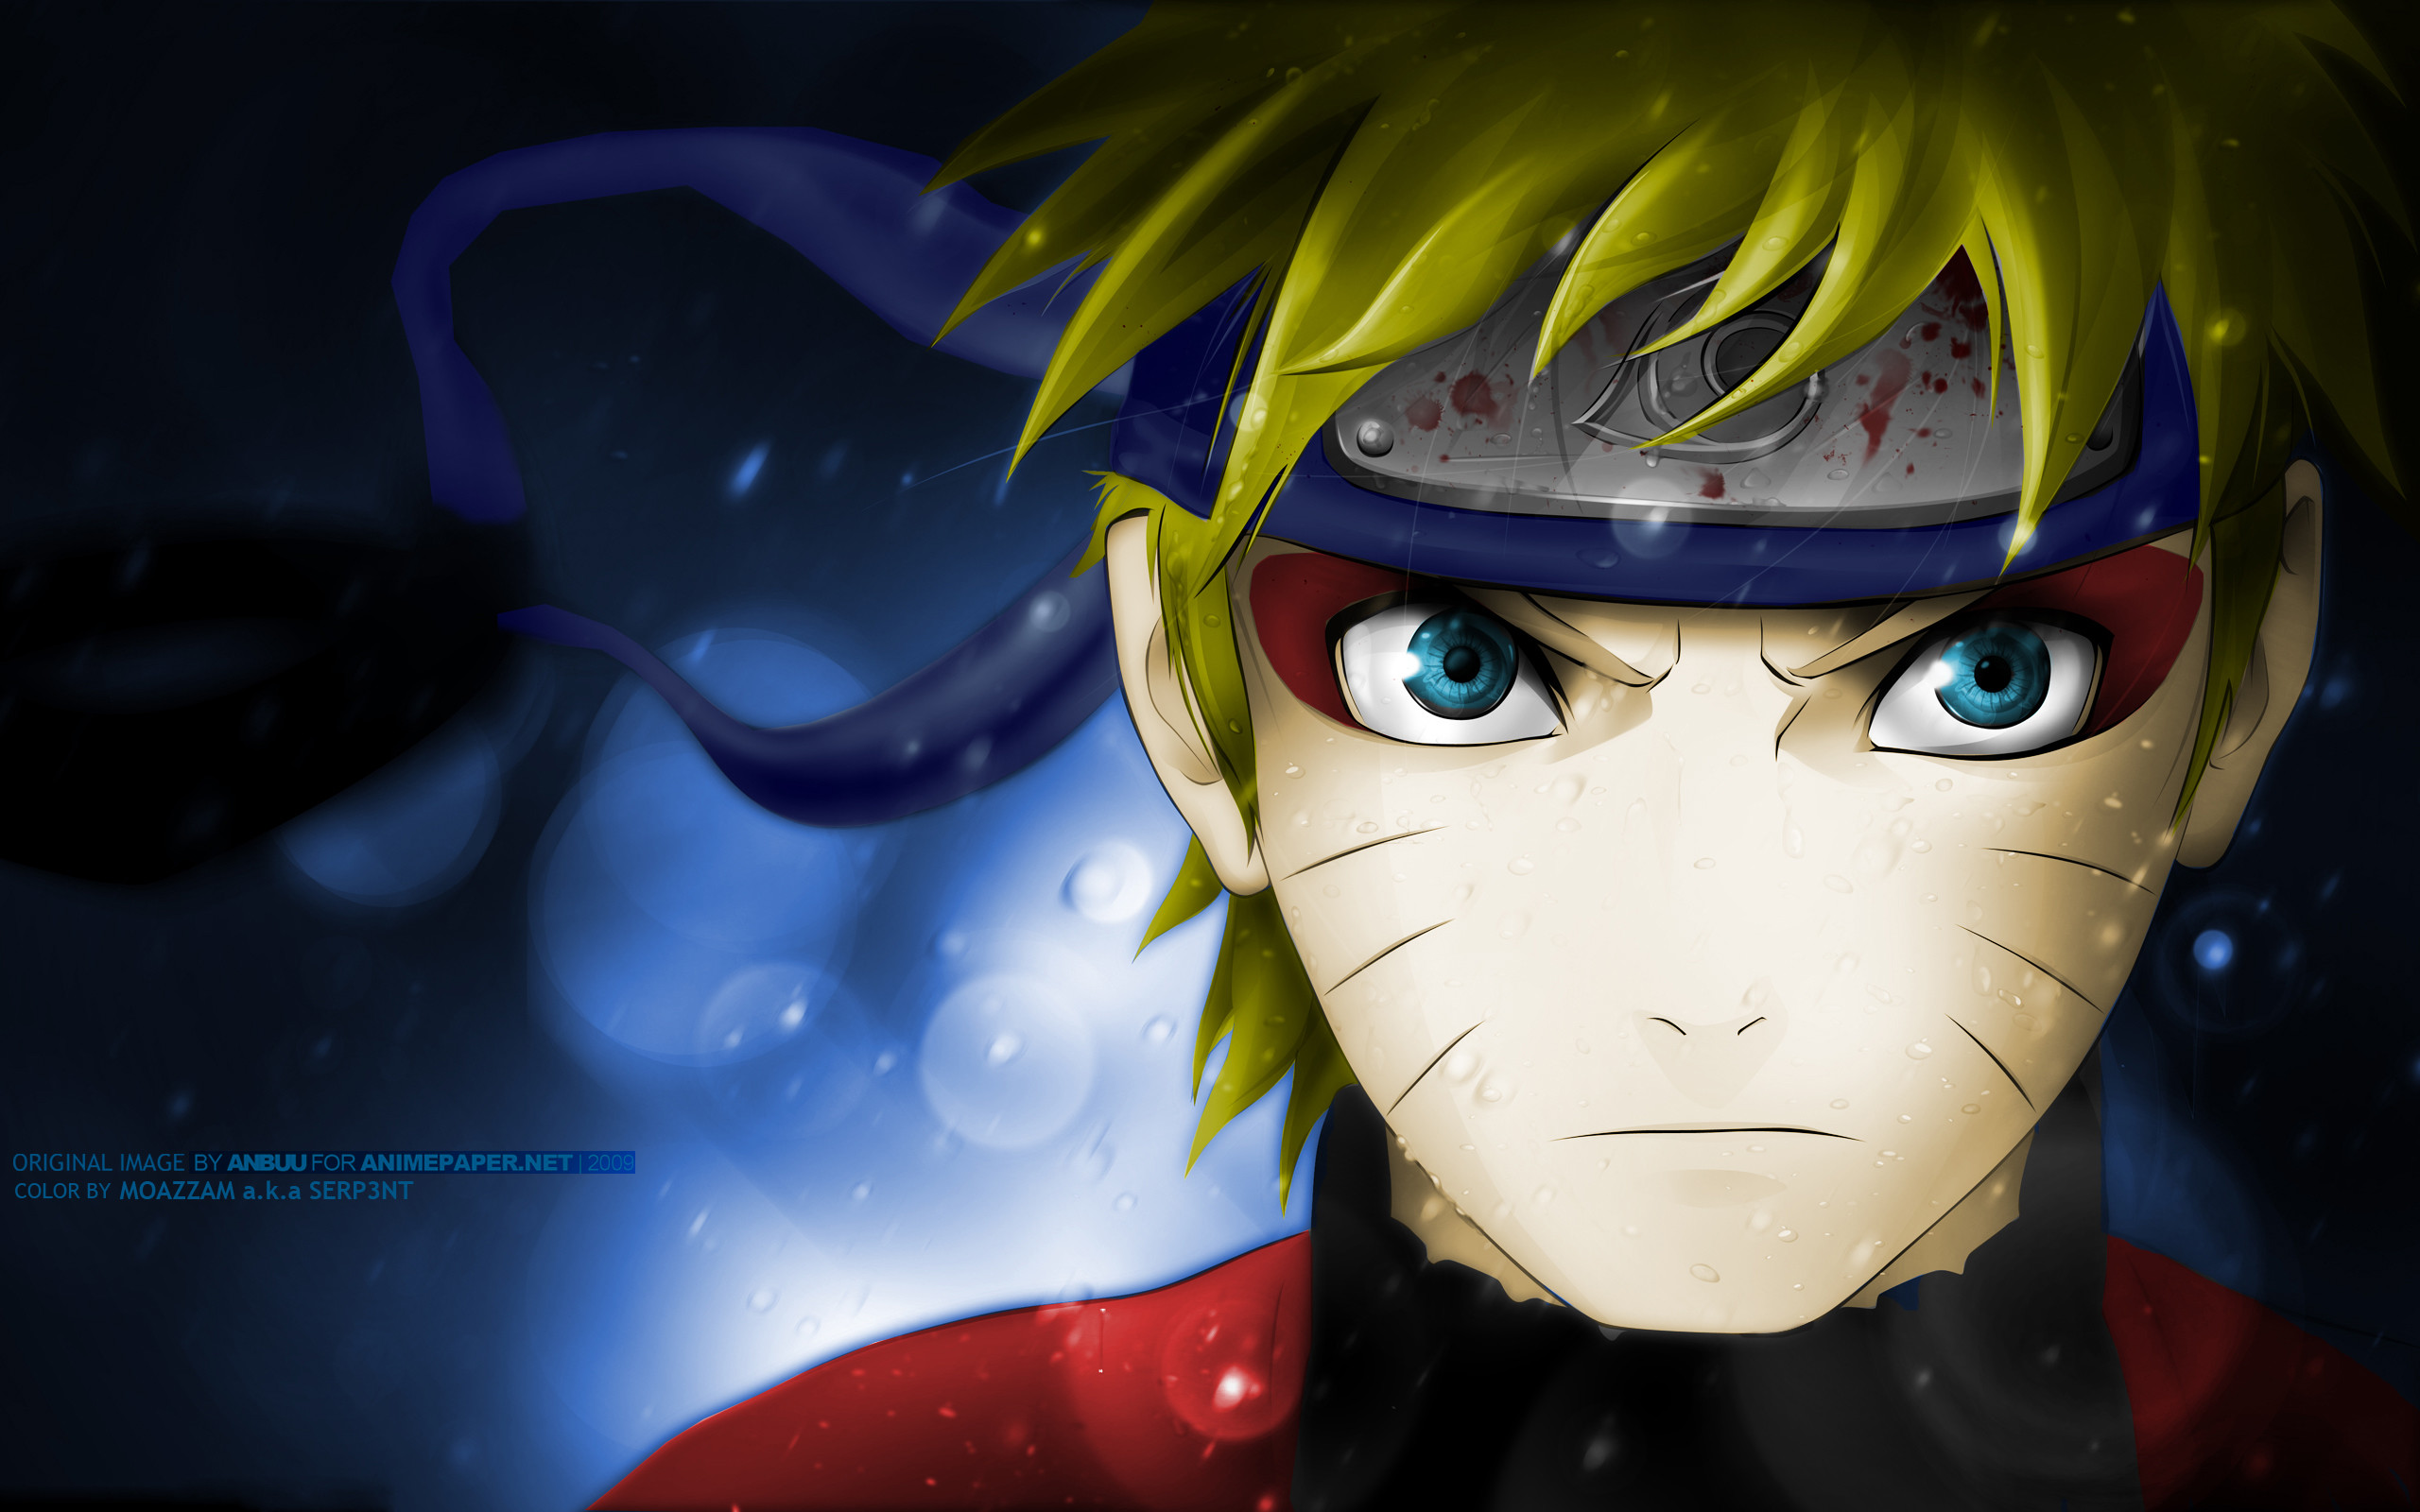 710425 cool naruto wallpapers hd 2560x1600 for ipad pro